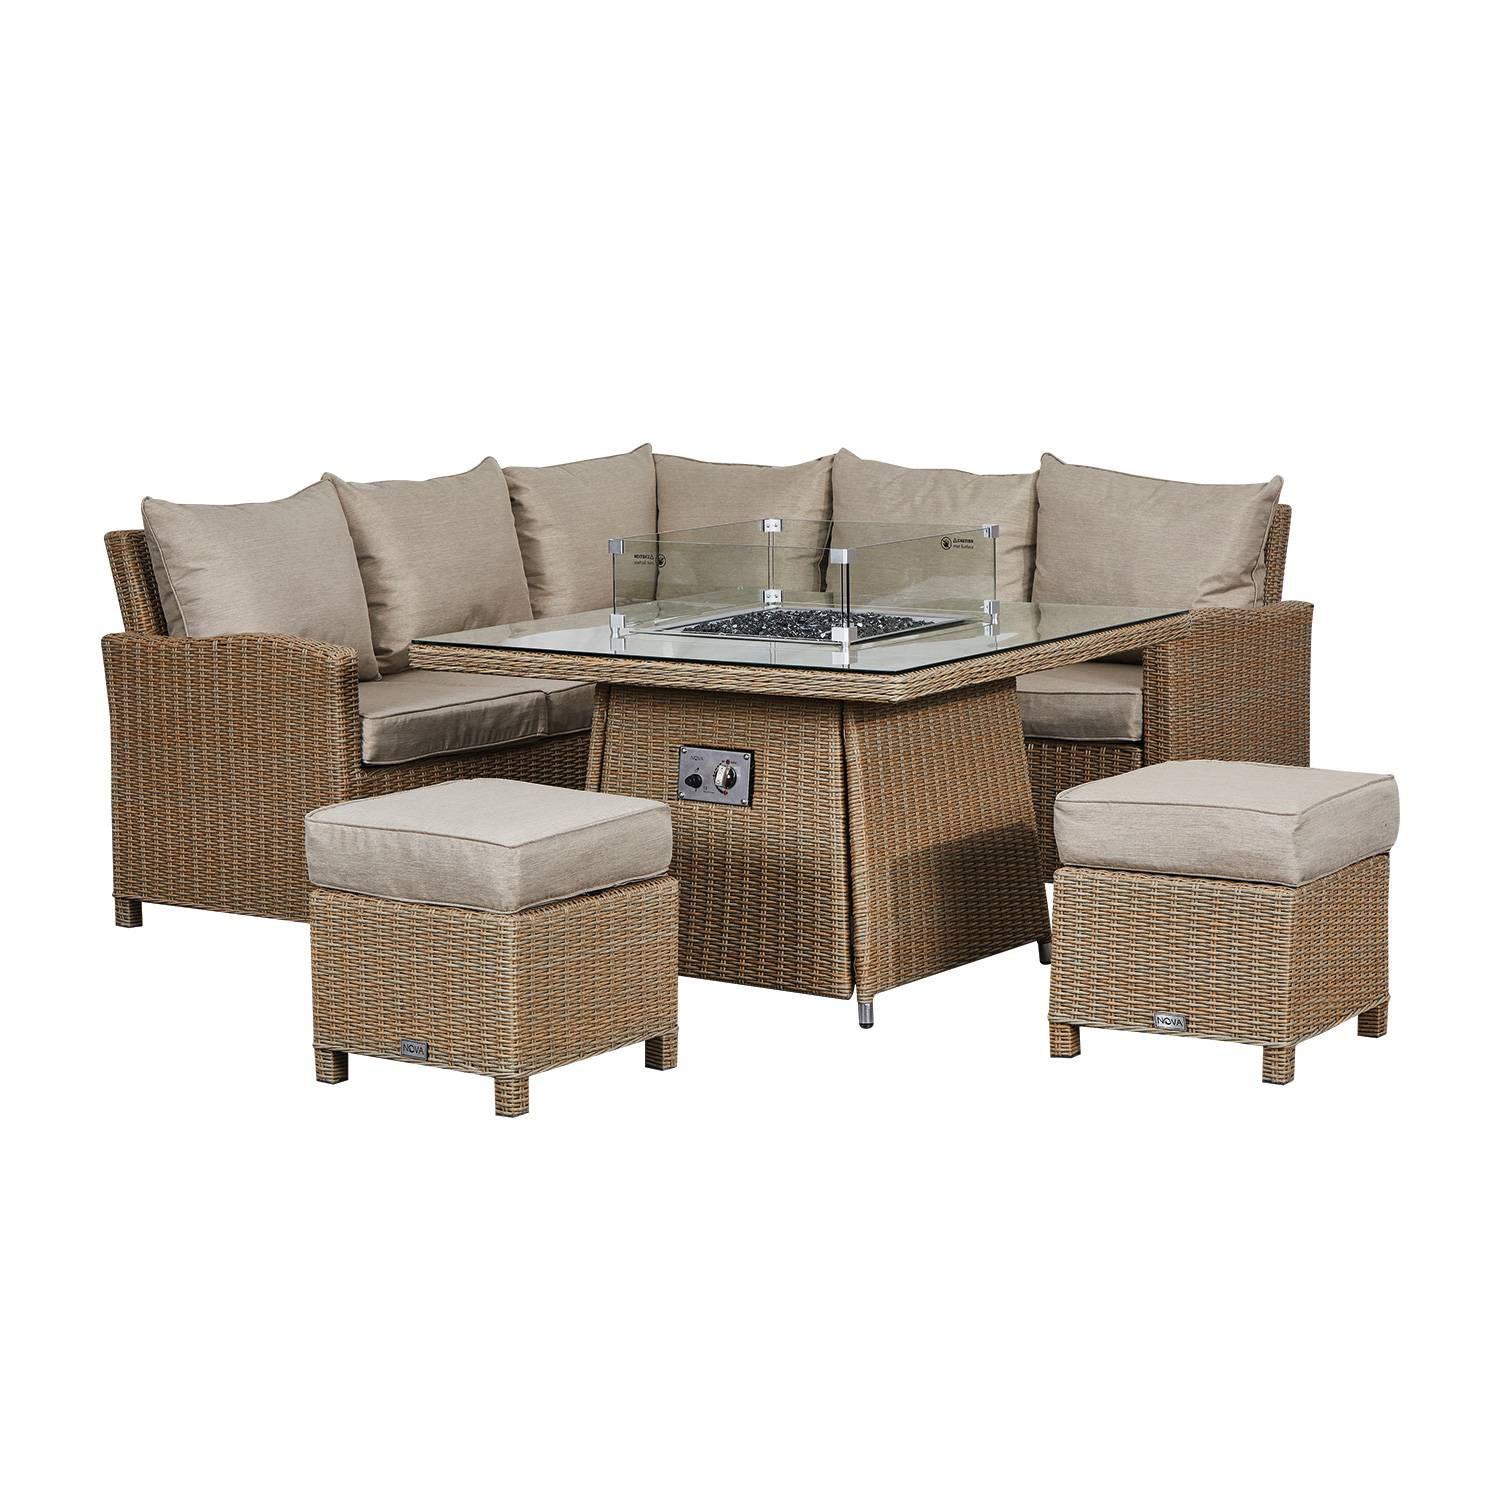 Oakworld Alfresco Heritage Ciara Compact Corner Dining Set with Fire Pit Table   Willow